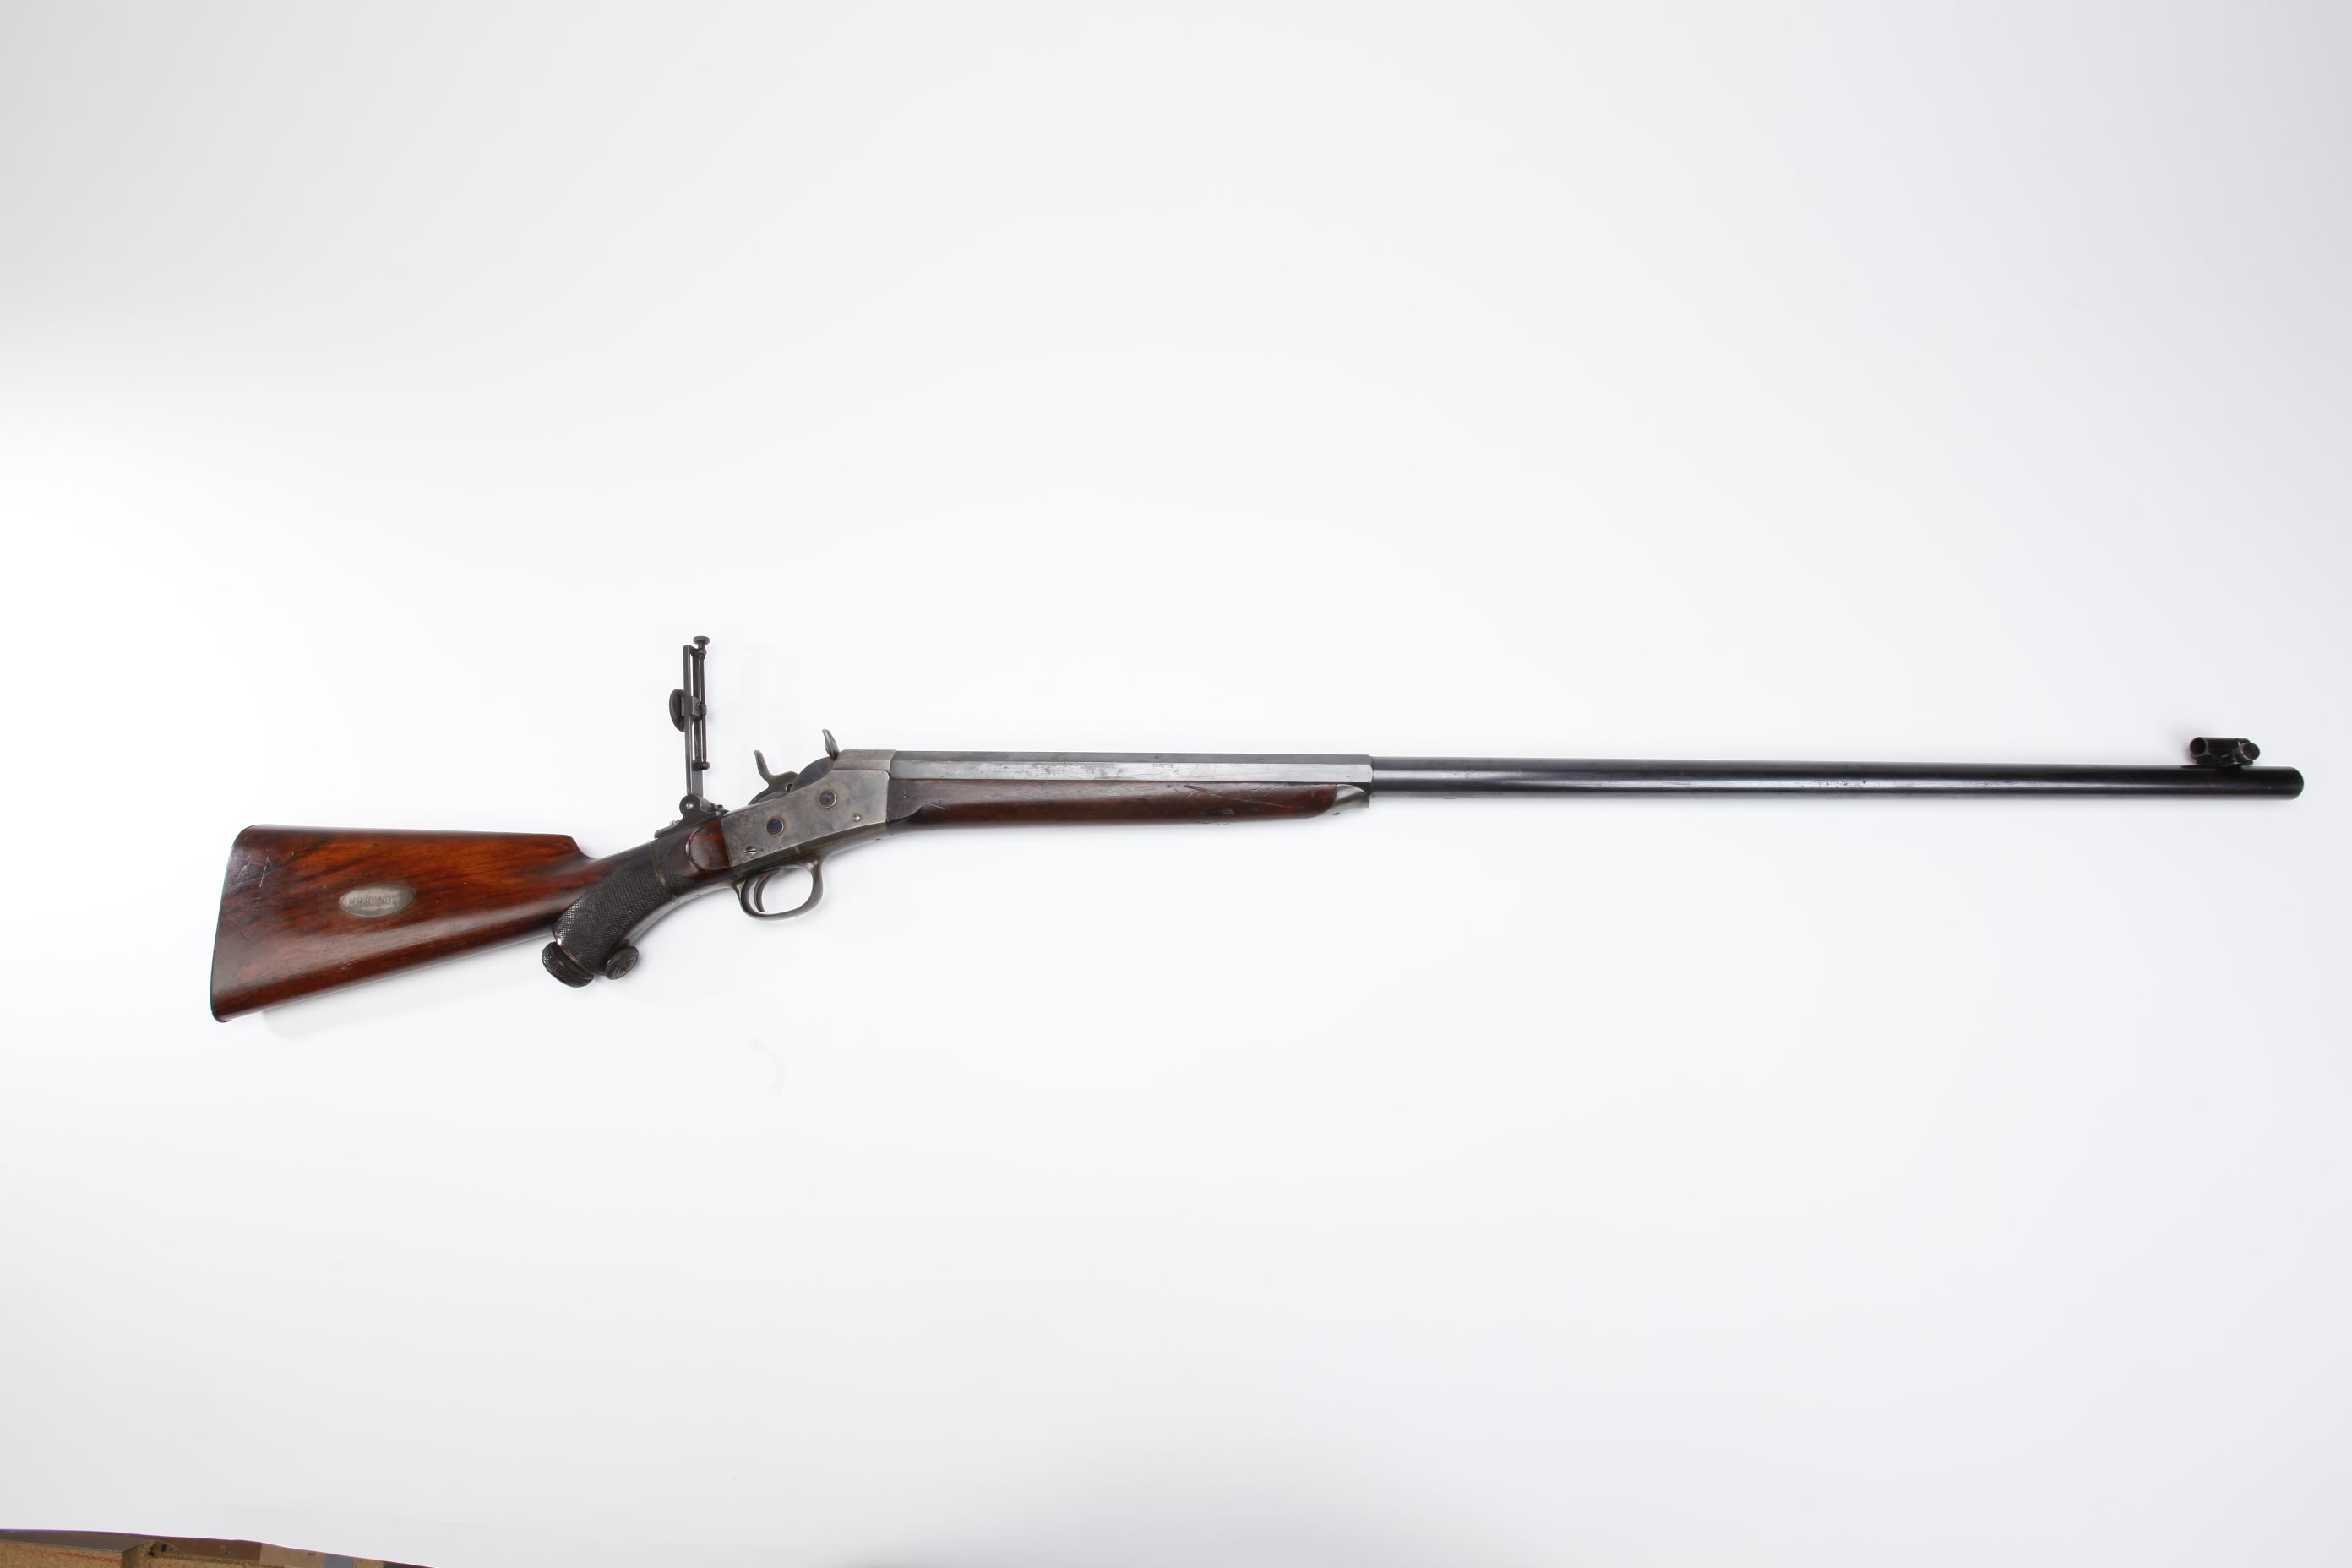 Remington Creedmoor Long Range Rifle